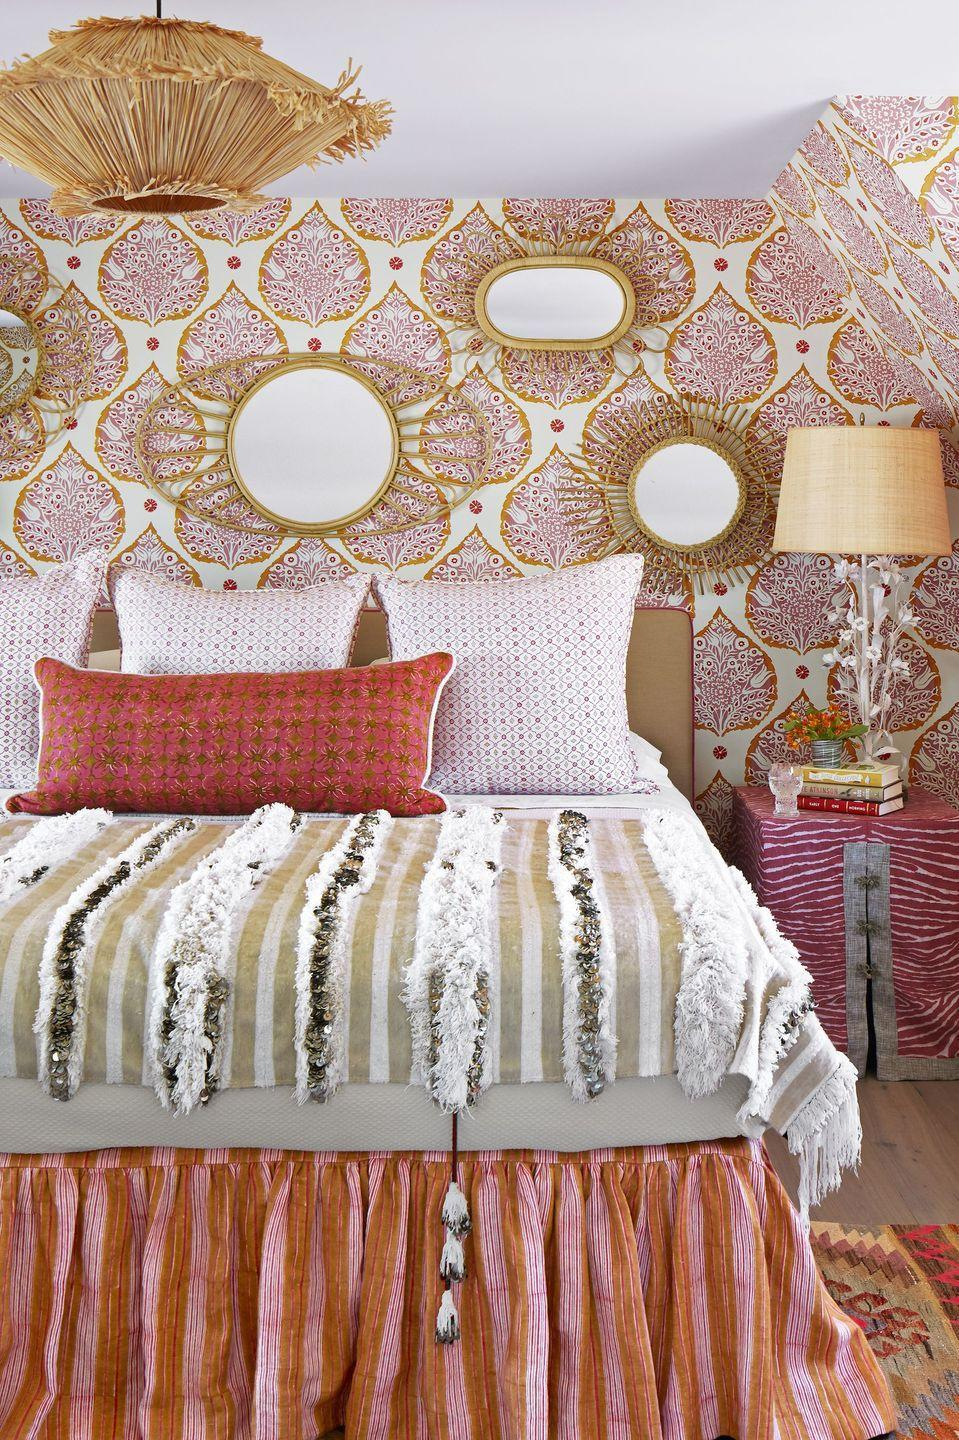 <p>If your teen has a favorite color and knows exactly what they want their room to look like, why not go all out? Make it feel like something they'll still want to sleep in when they're older by opting for good quality bedding and timeless lighting fixtures. Layering different textures also brings in some warmth. We're big fans of the gallery wall of mirrors above the bed for added dimension and light.</p>